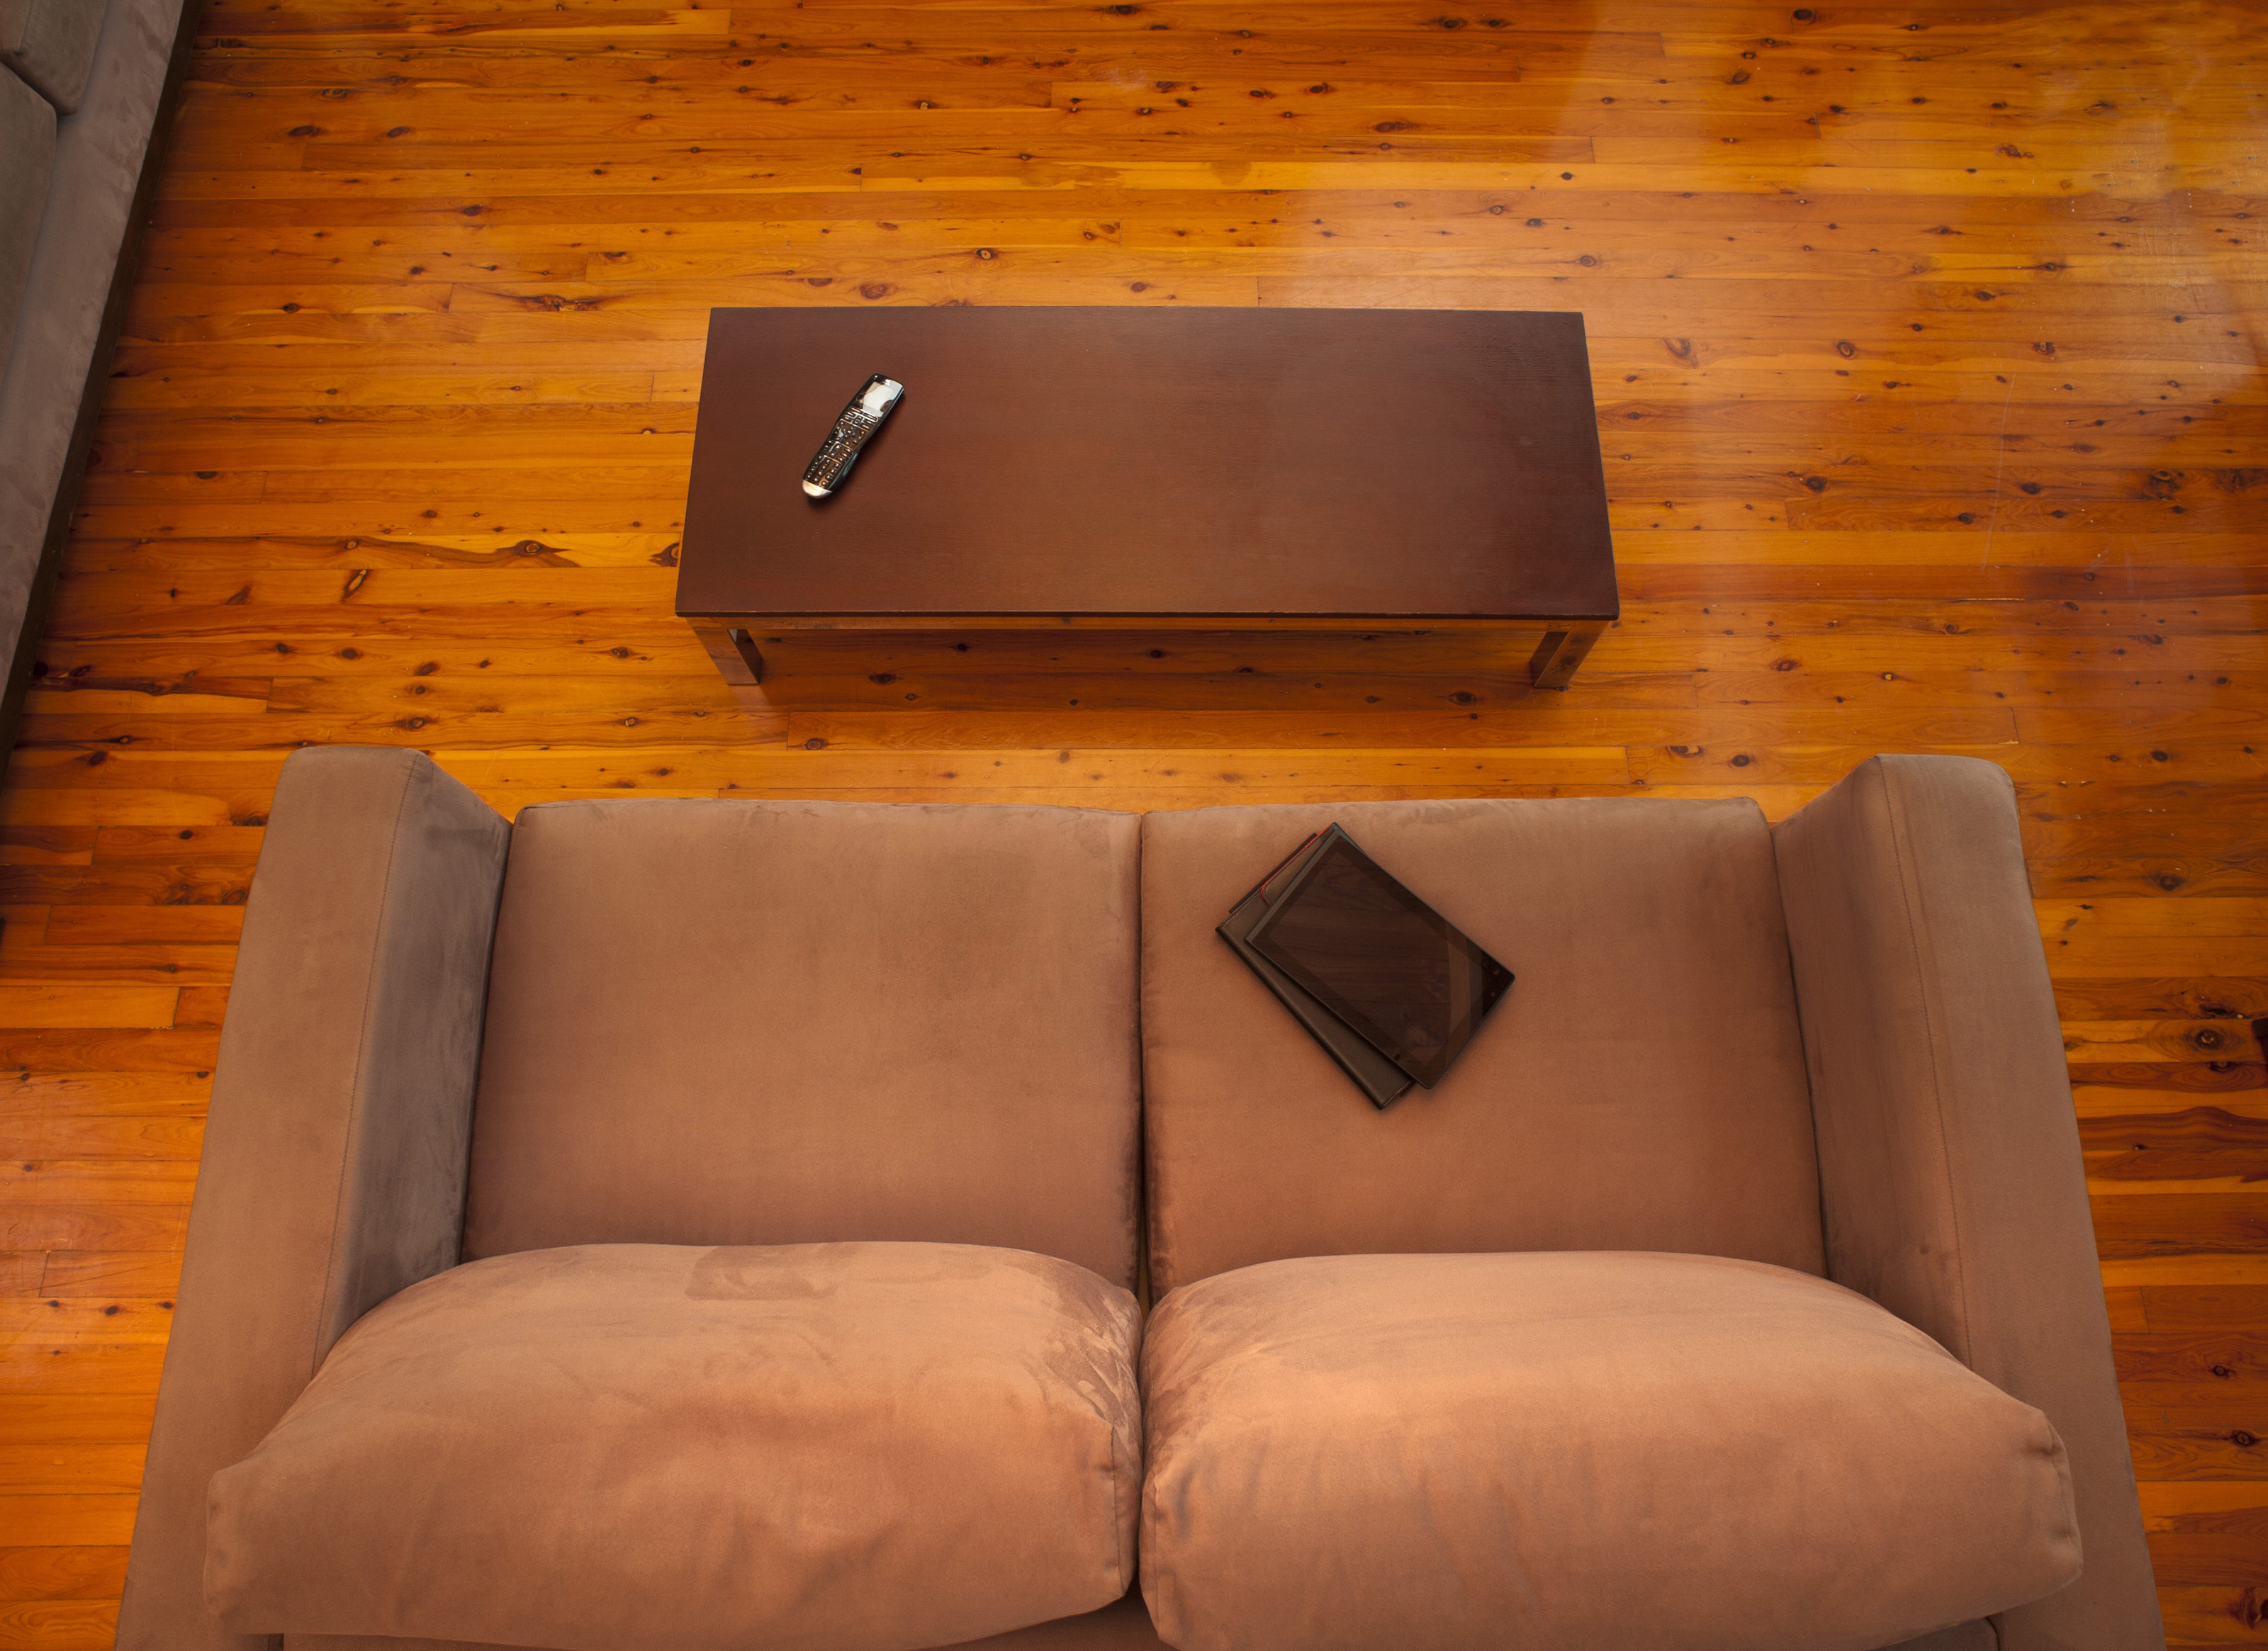 Free Stock Photo 8838 View From Above Of An Empty Lounge Sofa Freeimageslive